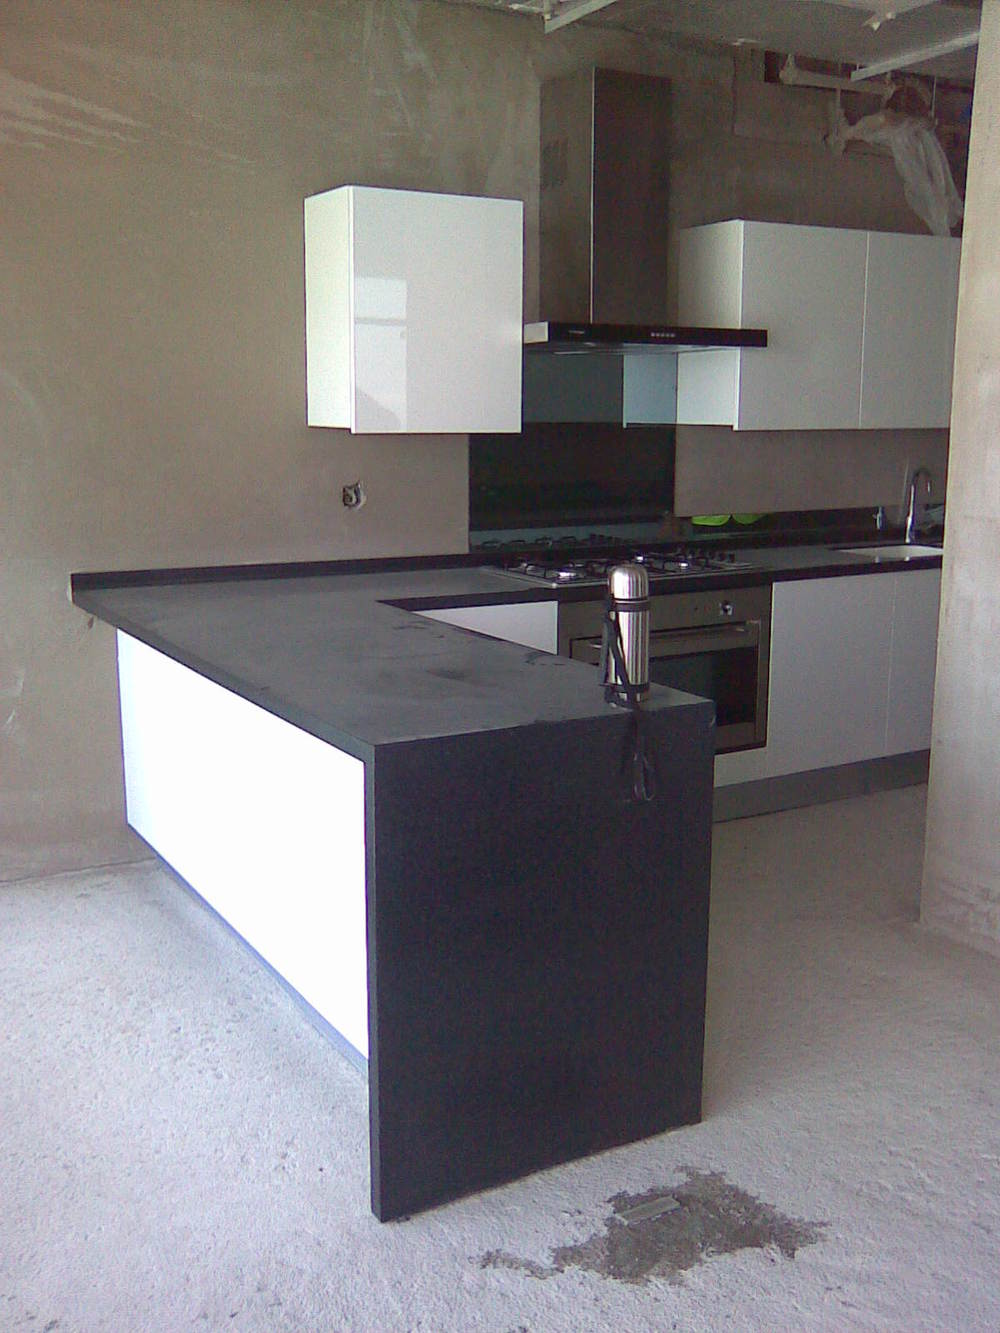 approved kitchen test installed on site